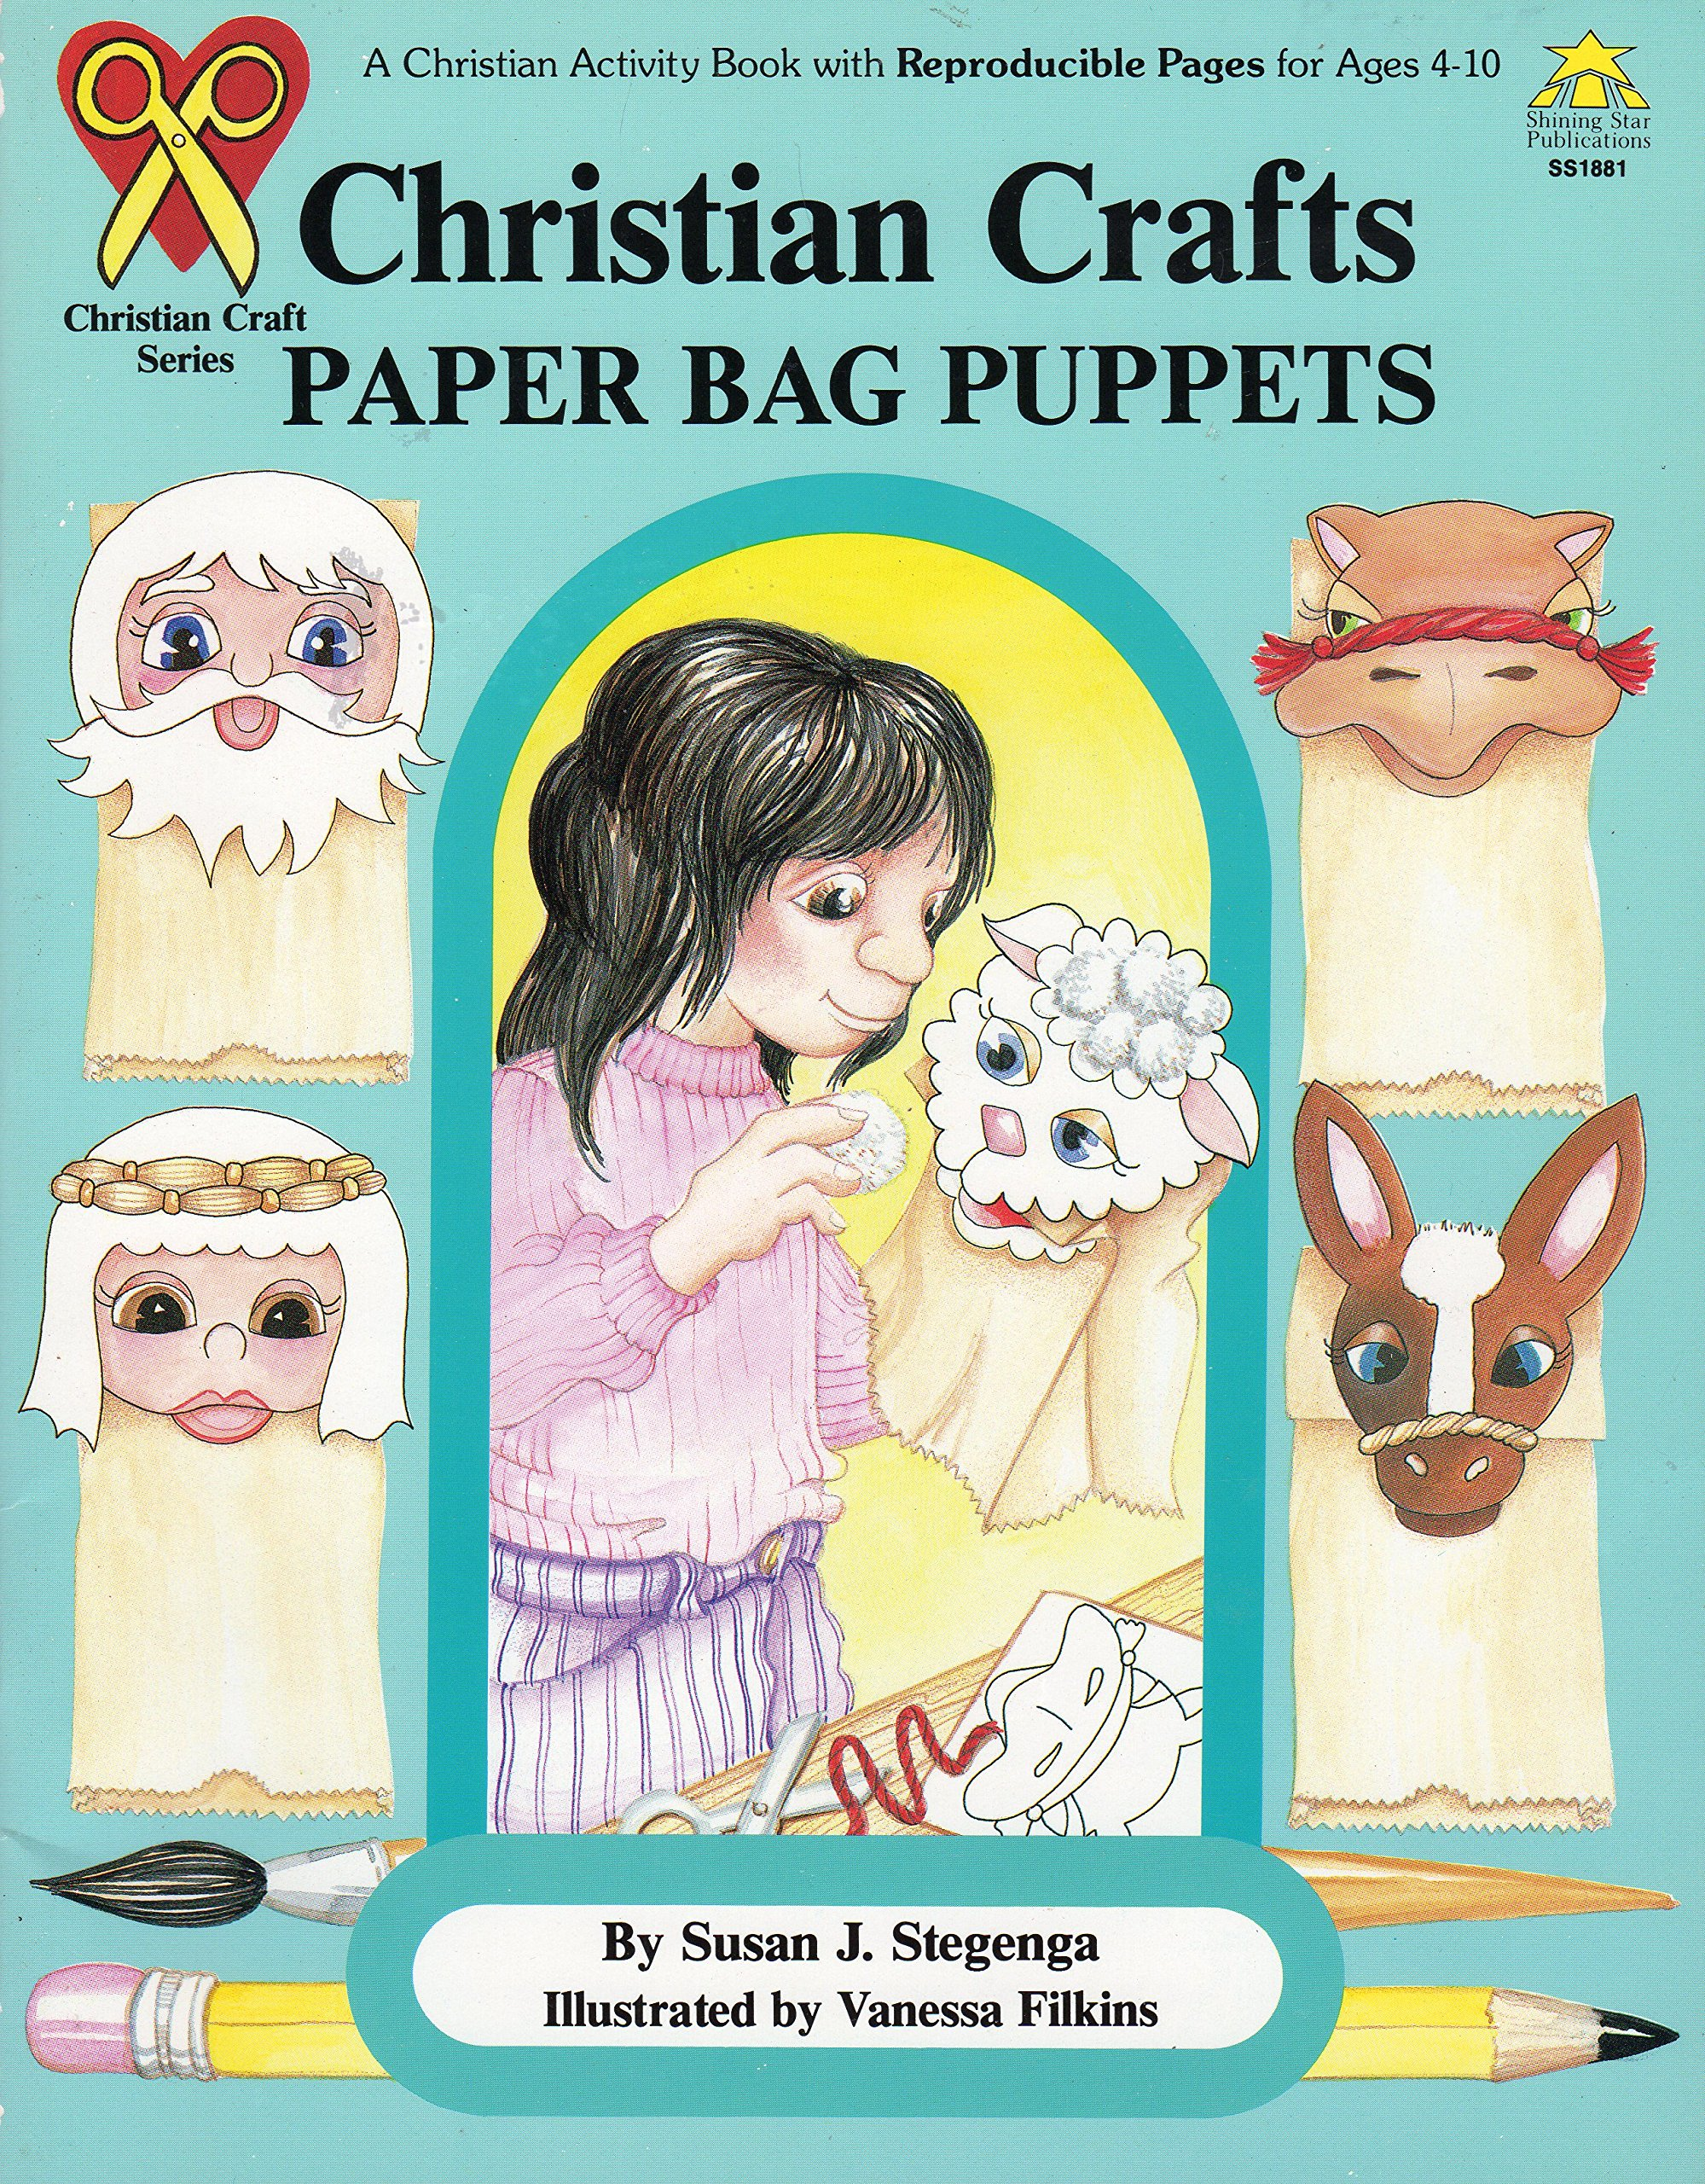 Christian Crafts - Paper Bag Puppets